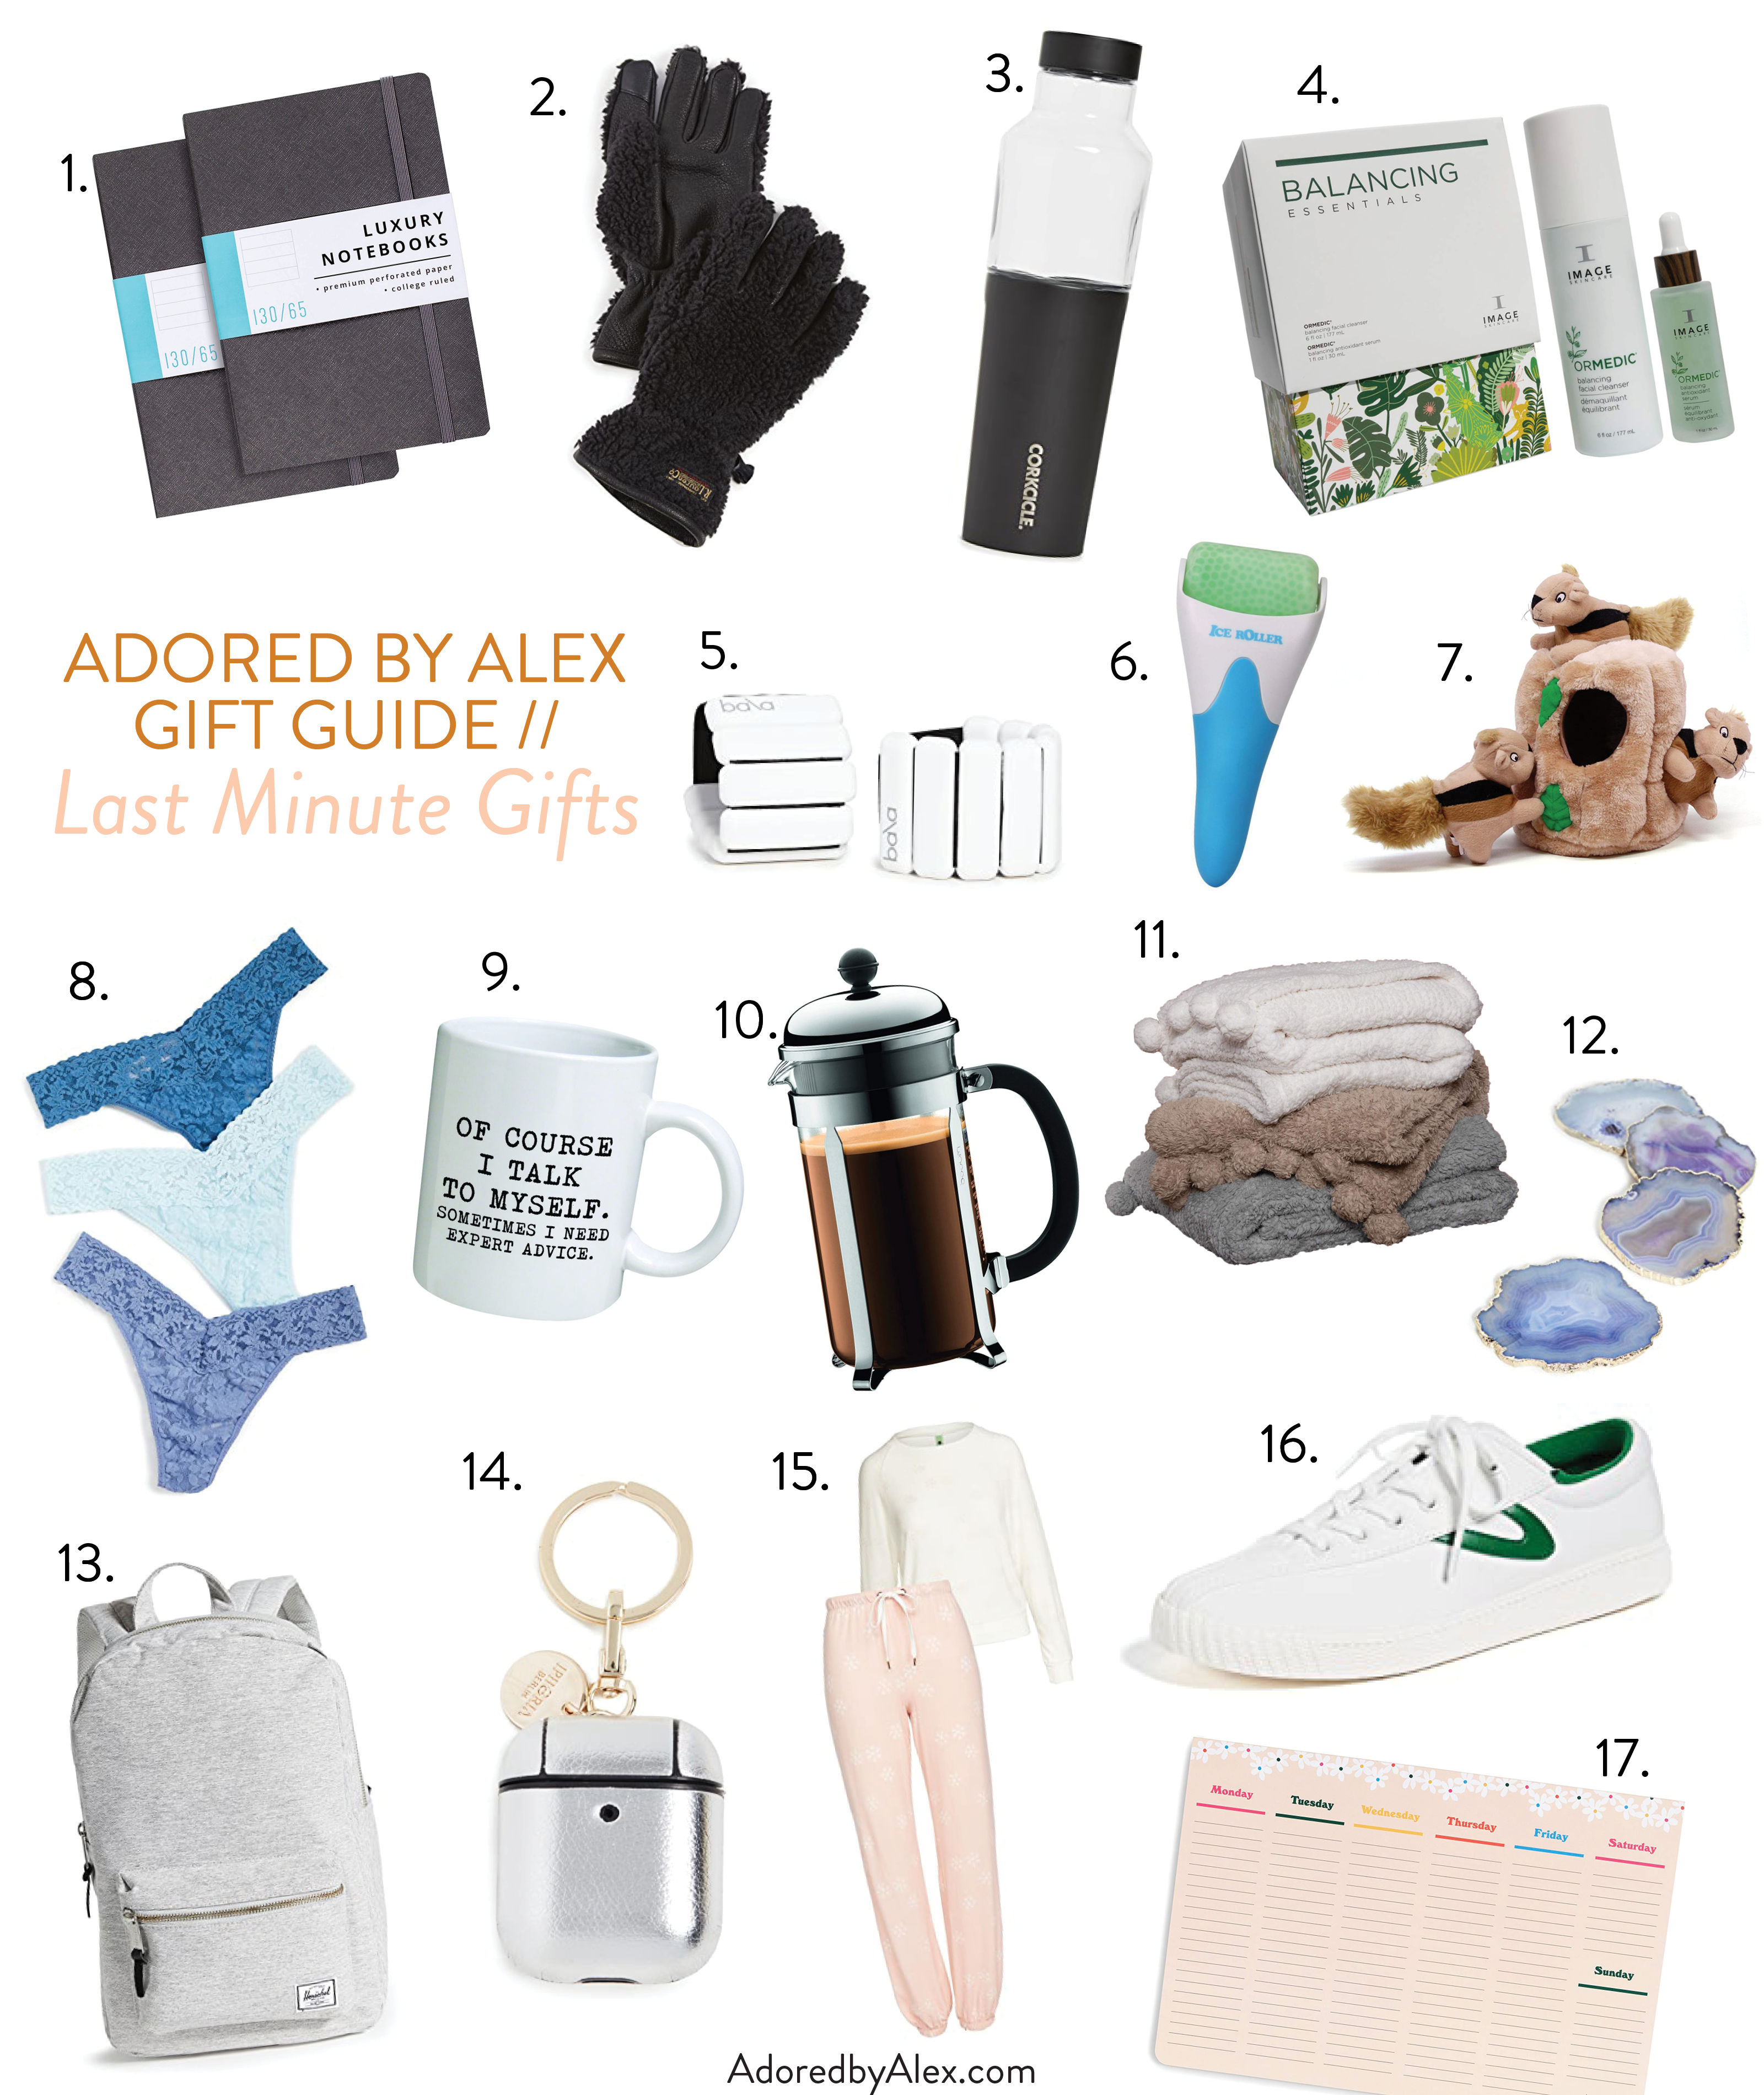 Last Minute Gifts for Christmas - Adored by Alex